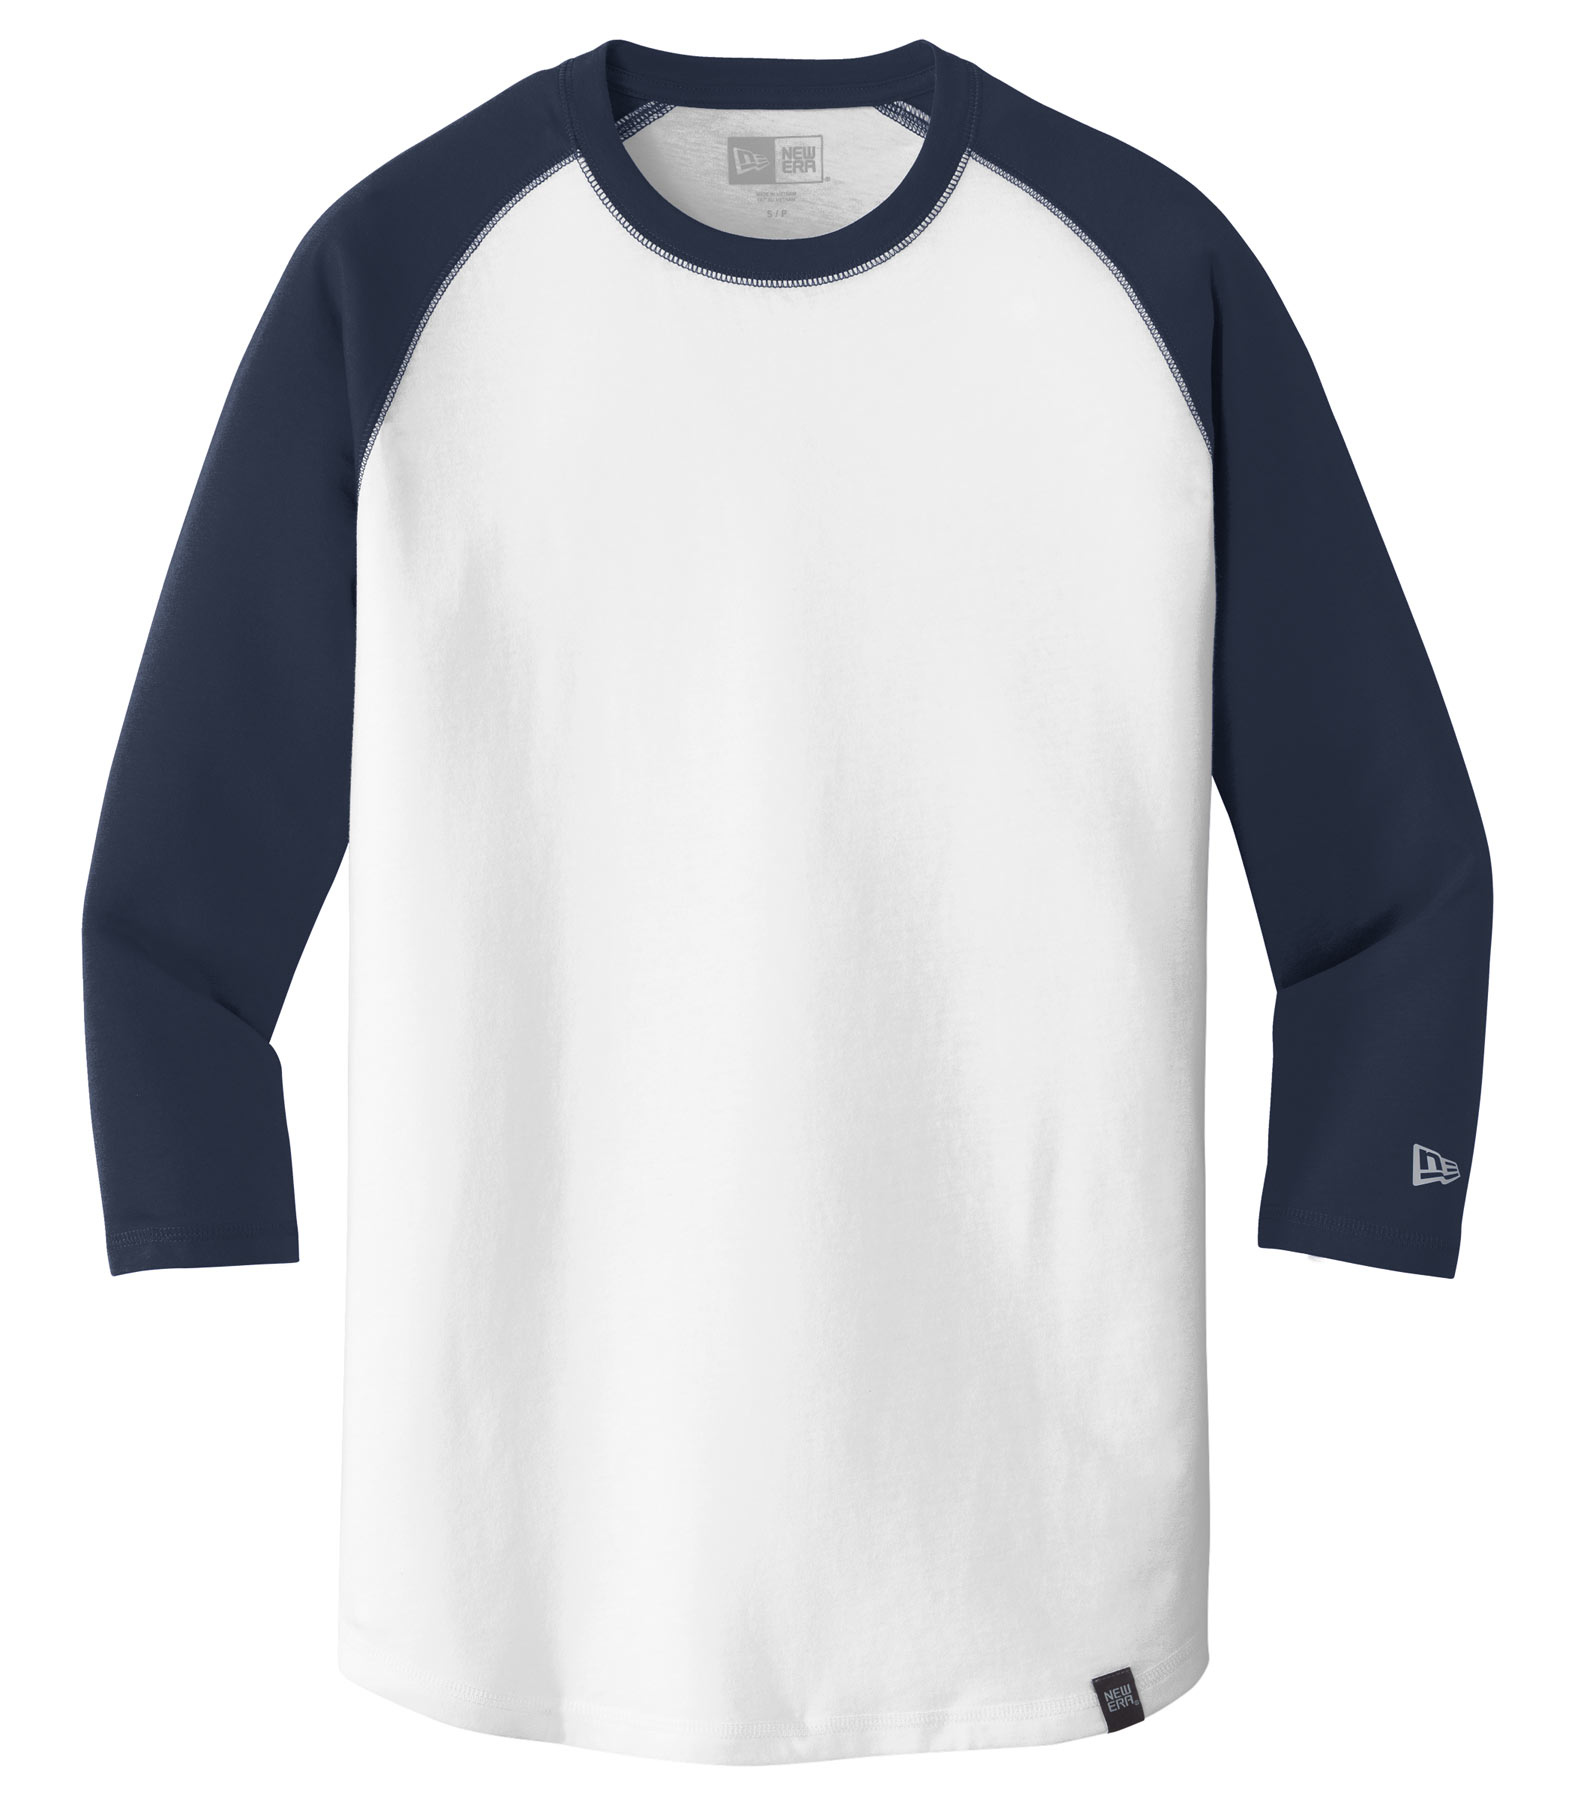 8b2e6769410 Custom New Era® Mens Heritage Blend 3 4 Sleeve Baseball Raglan Tee